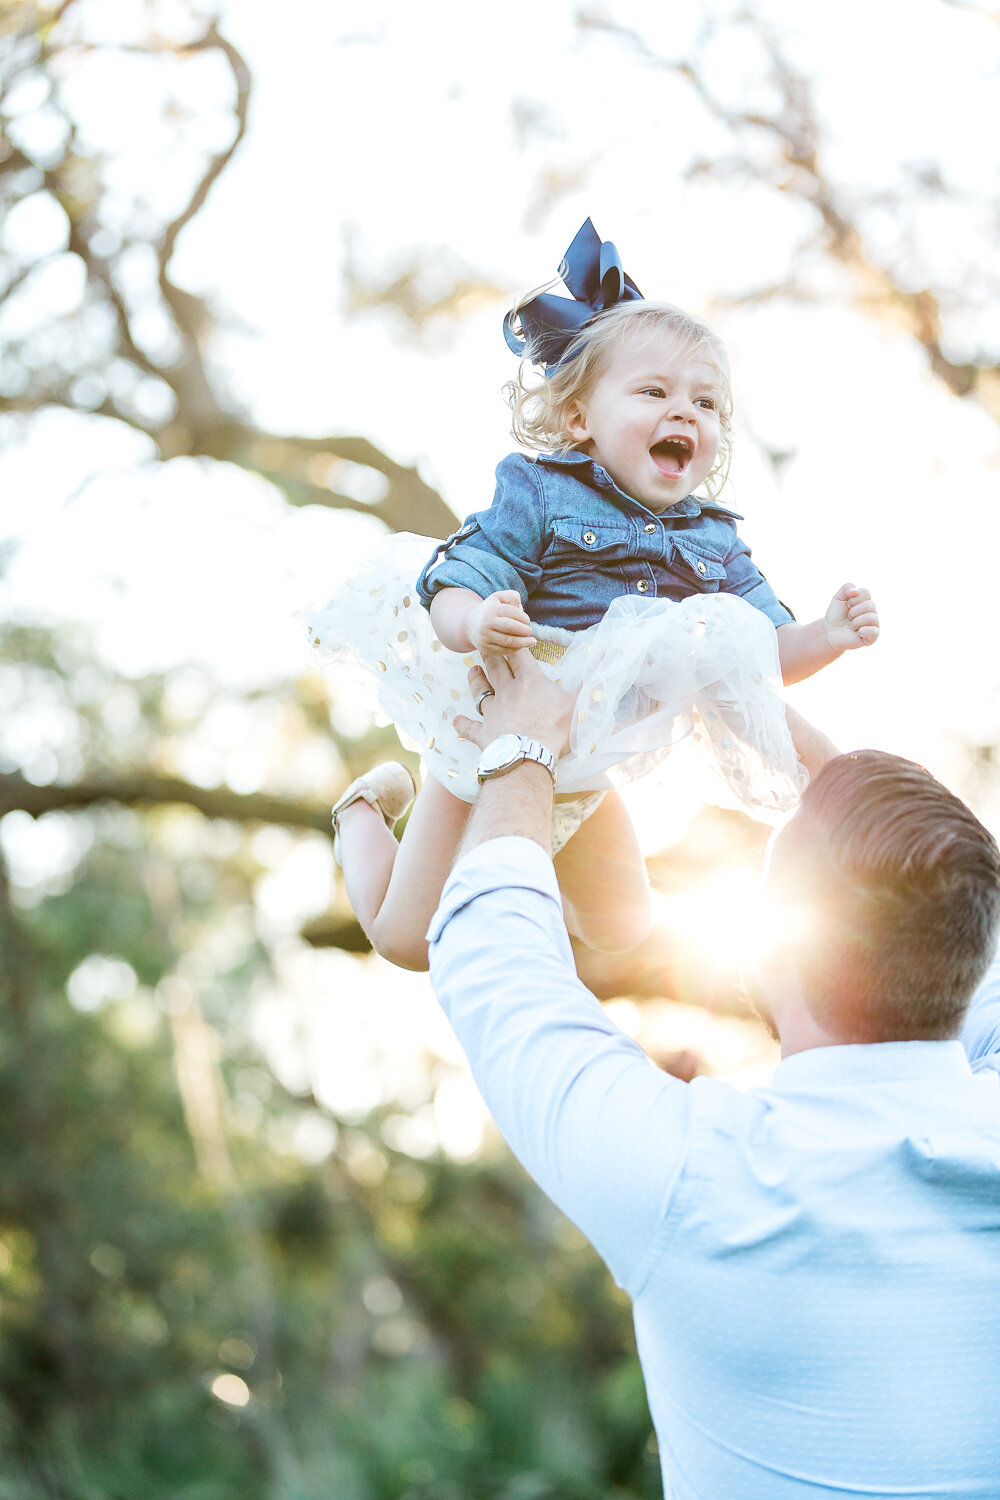 daddy-daughter sunset picture inspiration in Nocatee's 20 mile park